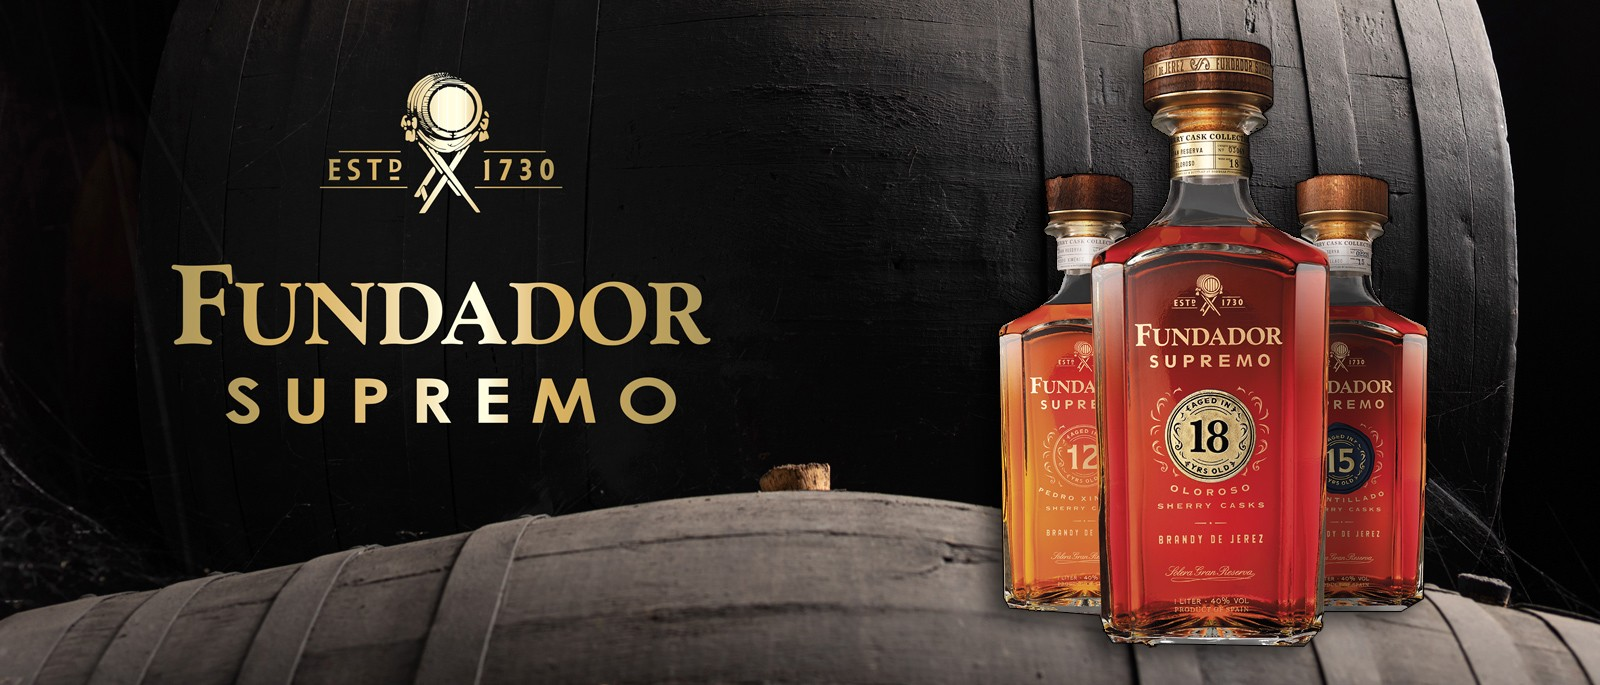 Fundador Brandy Focus on Distillery